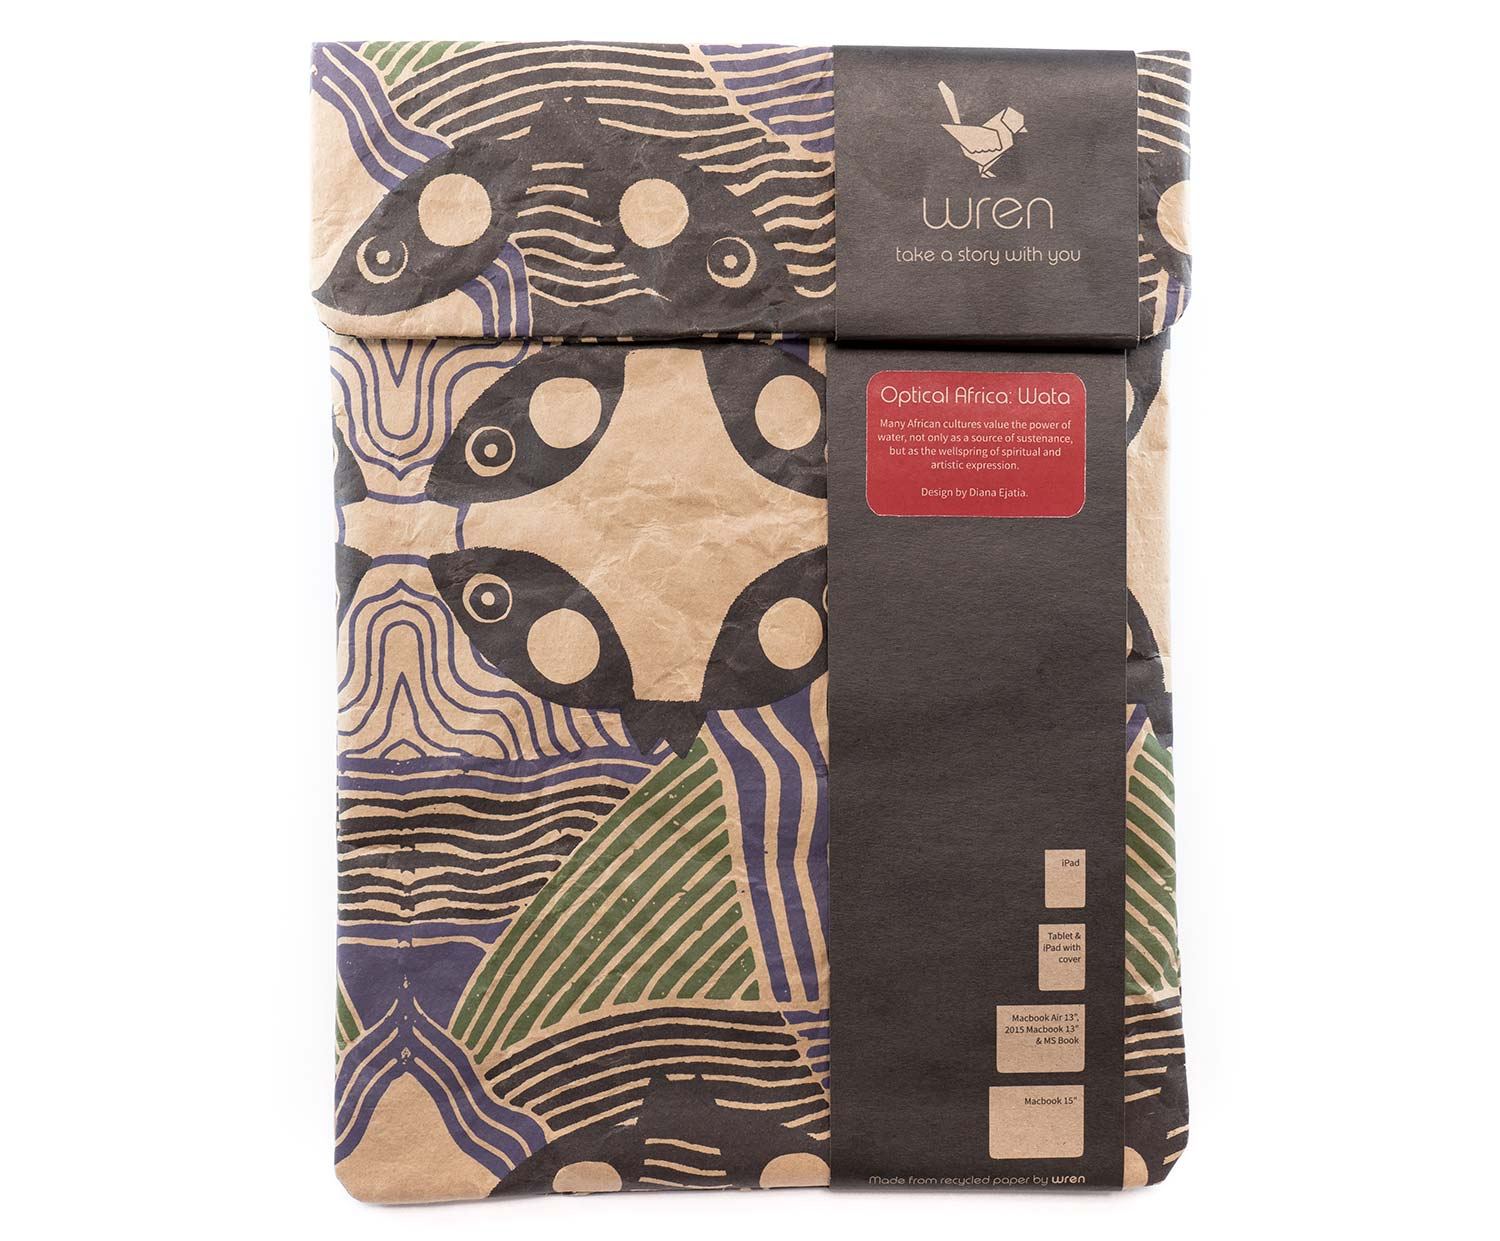 wren design zementsack sleeve optical africa f r ipad. Black Bedroom Furniture Sets. Home Design Ideas